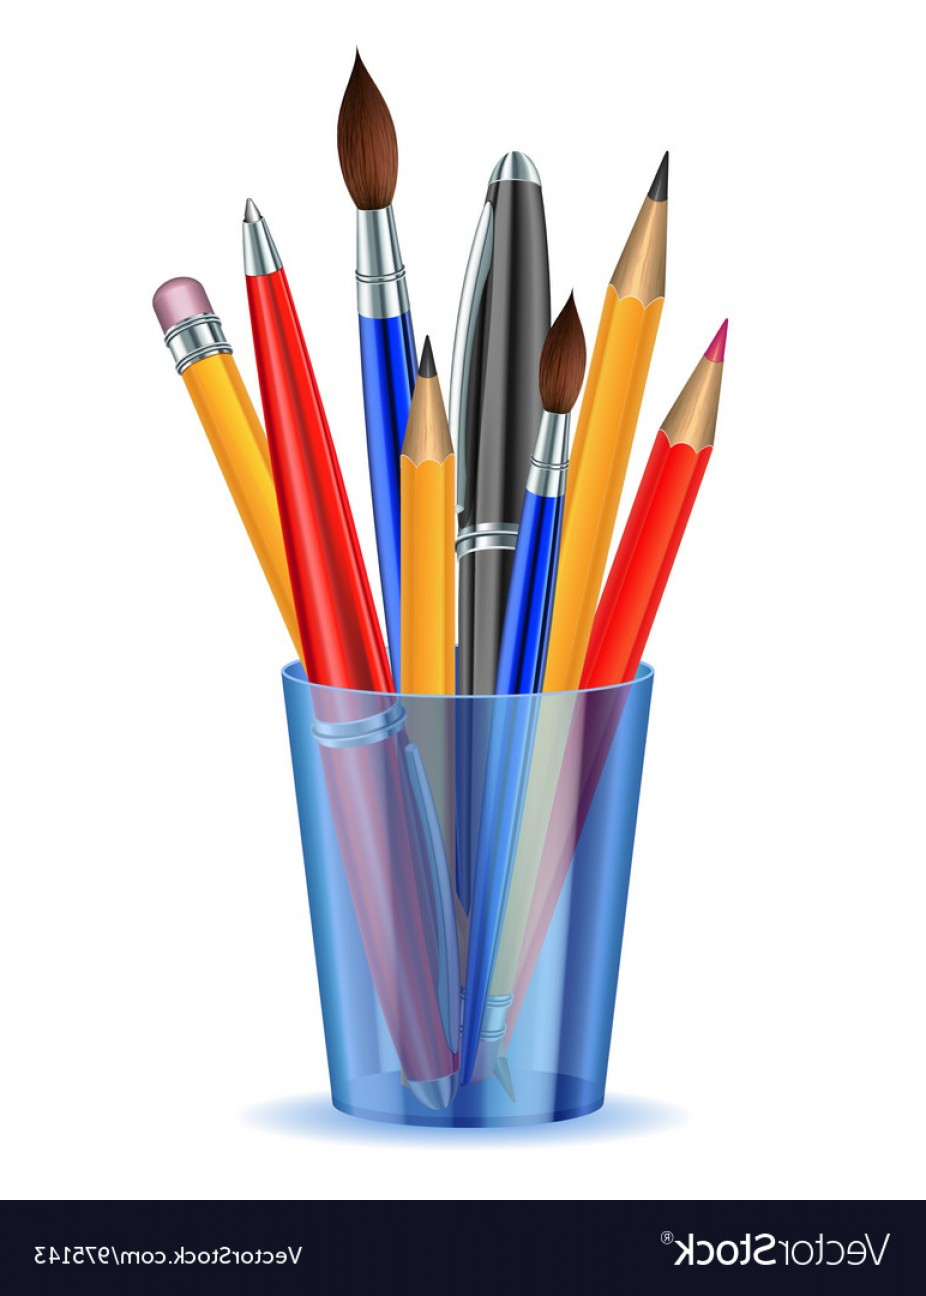 Vector Pencil Holder: Brushes Pencils And Pens In The Holder Vector